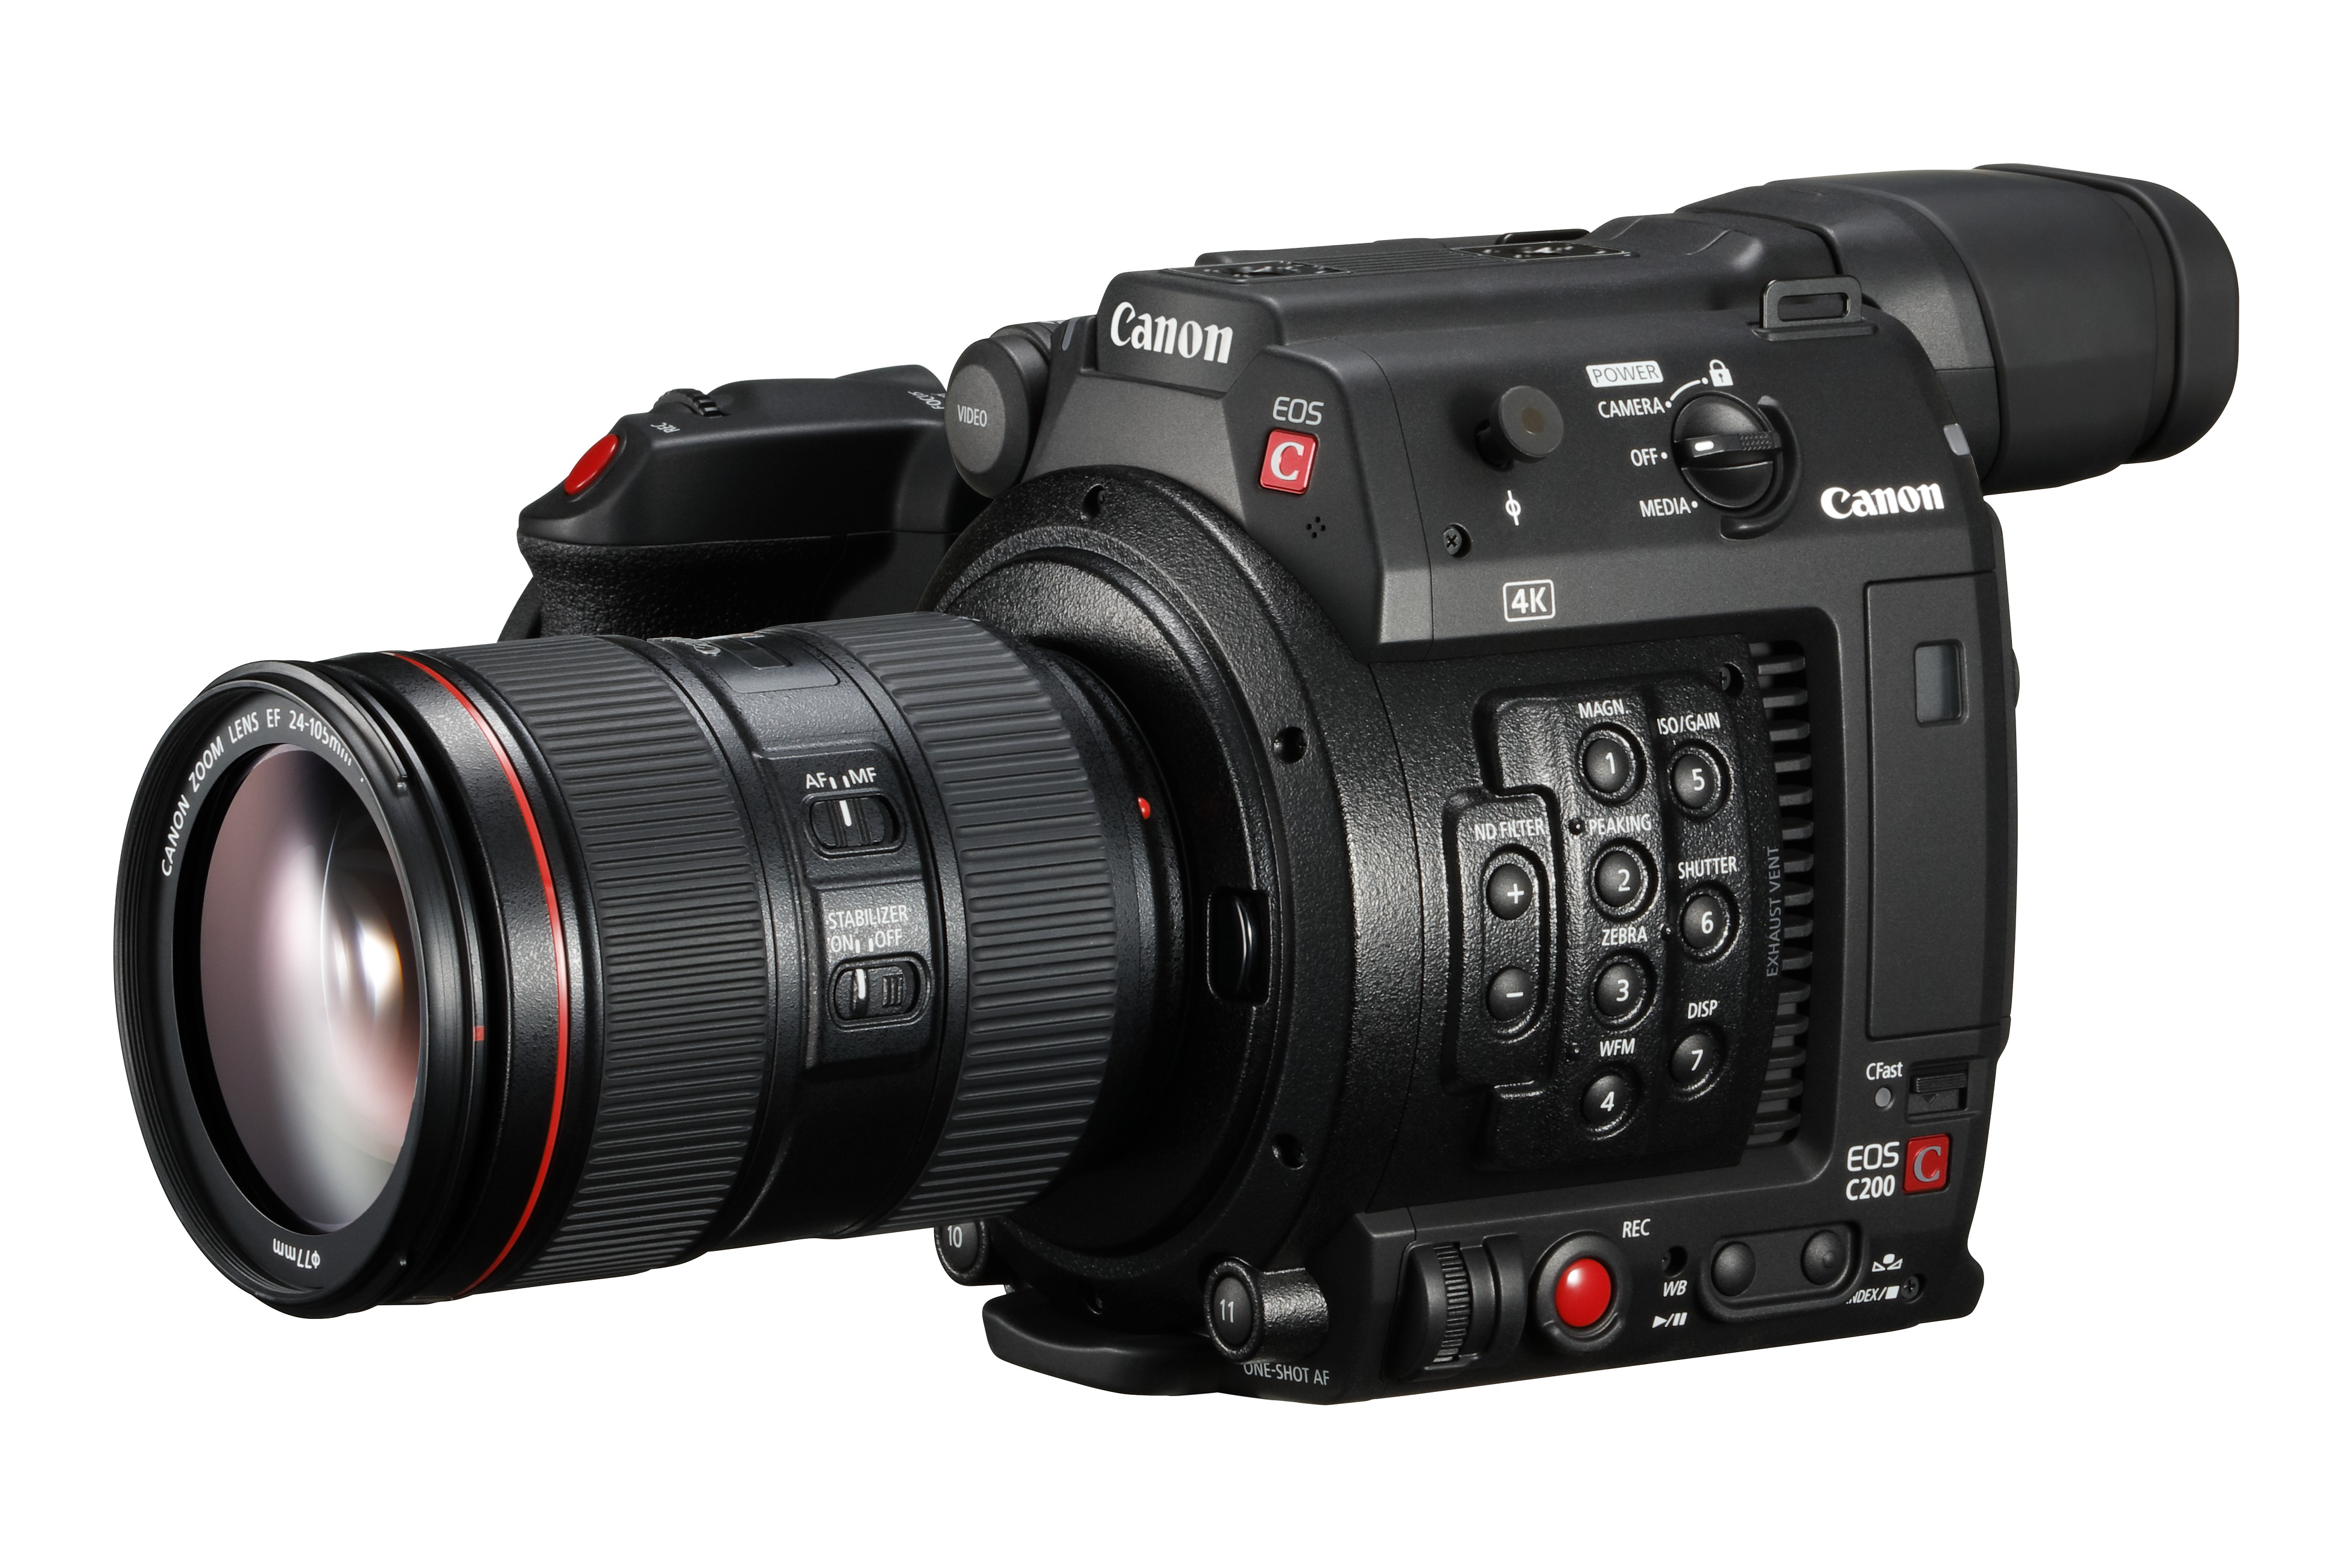 Watch: See the new Canon EOS C200 in action - The Video Mode